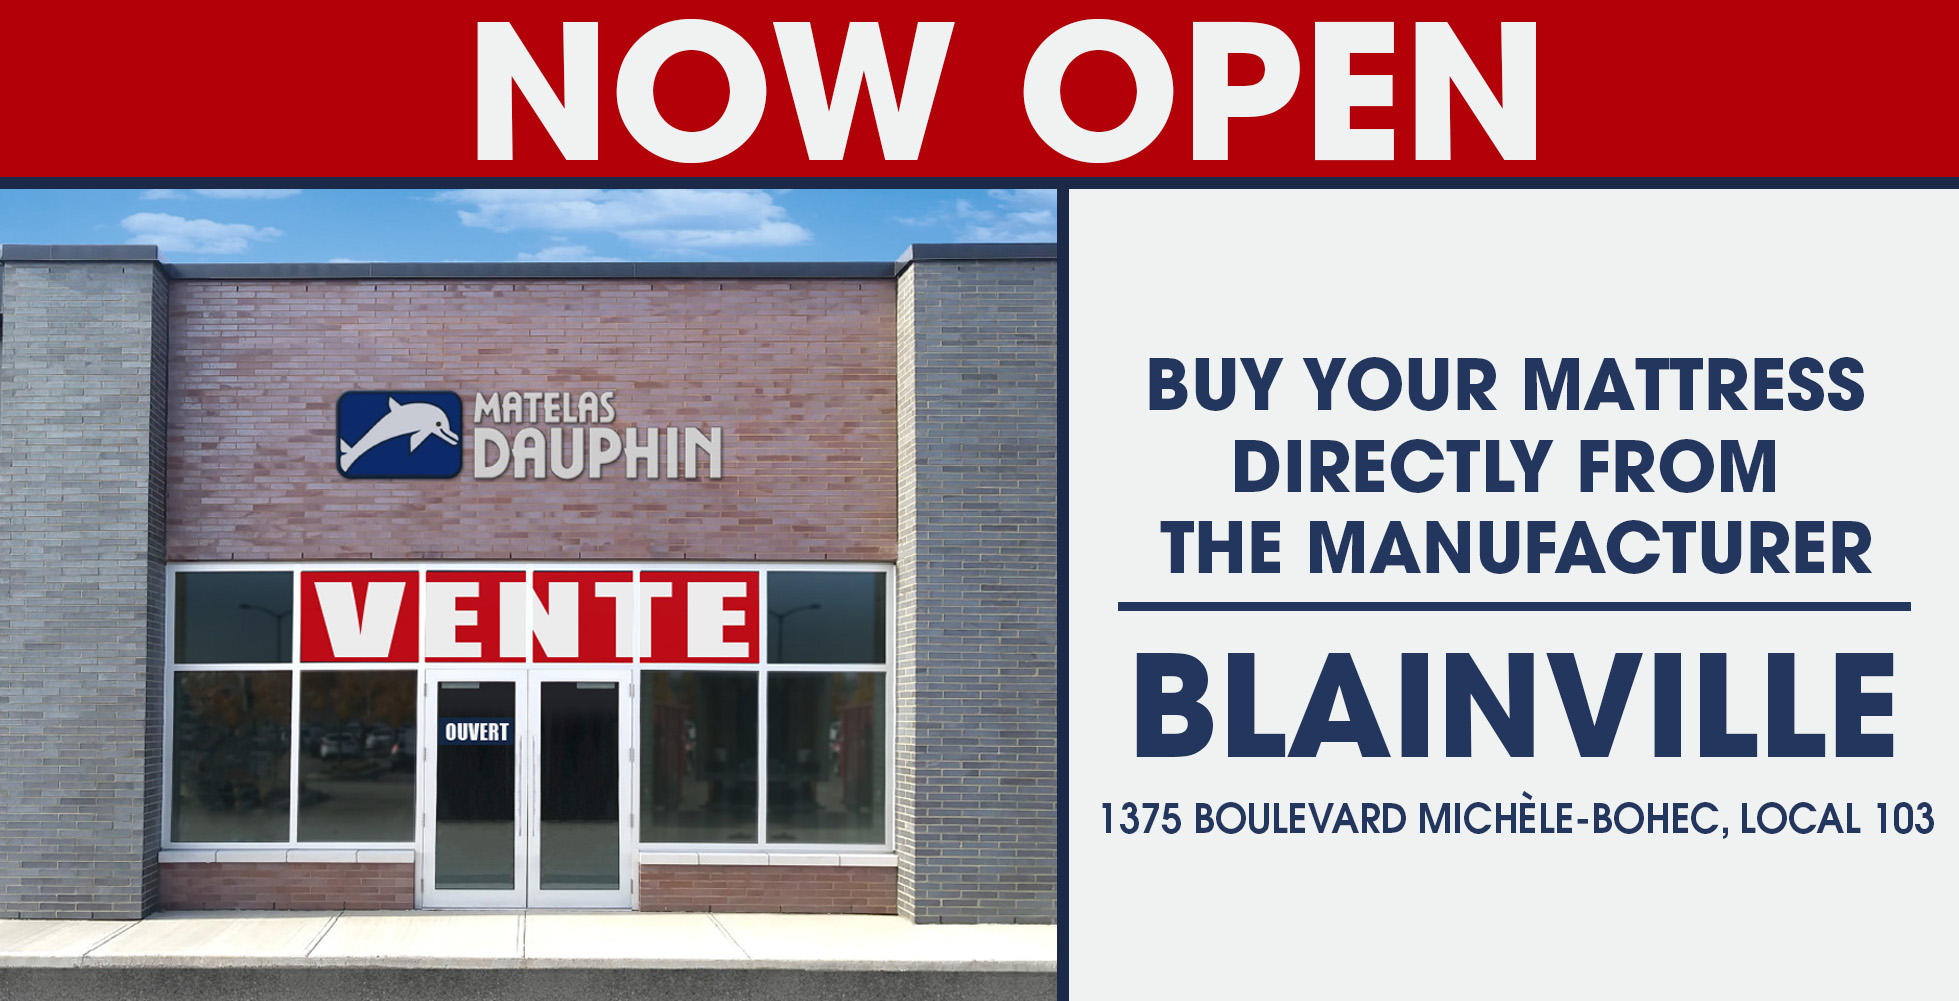 Opening Blainville